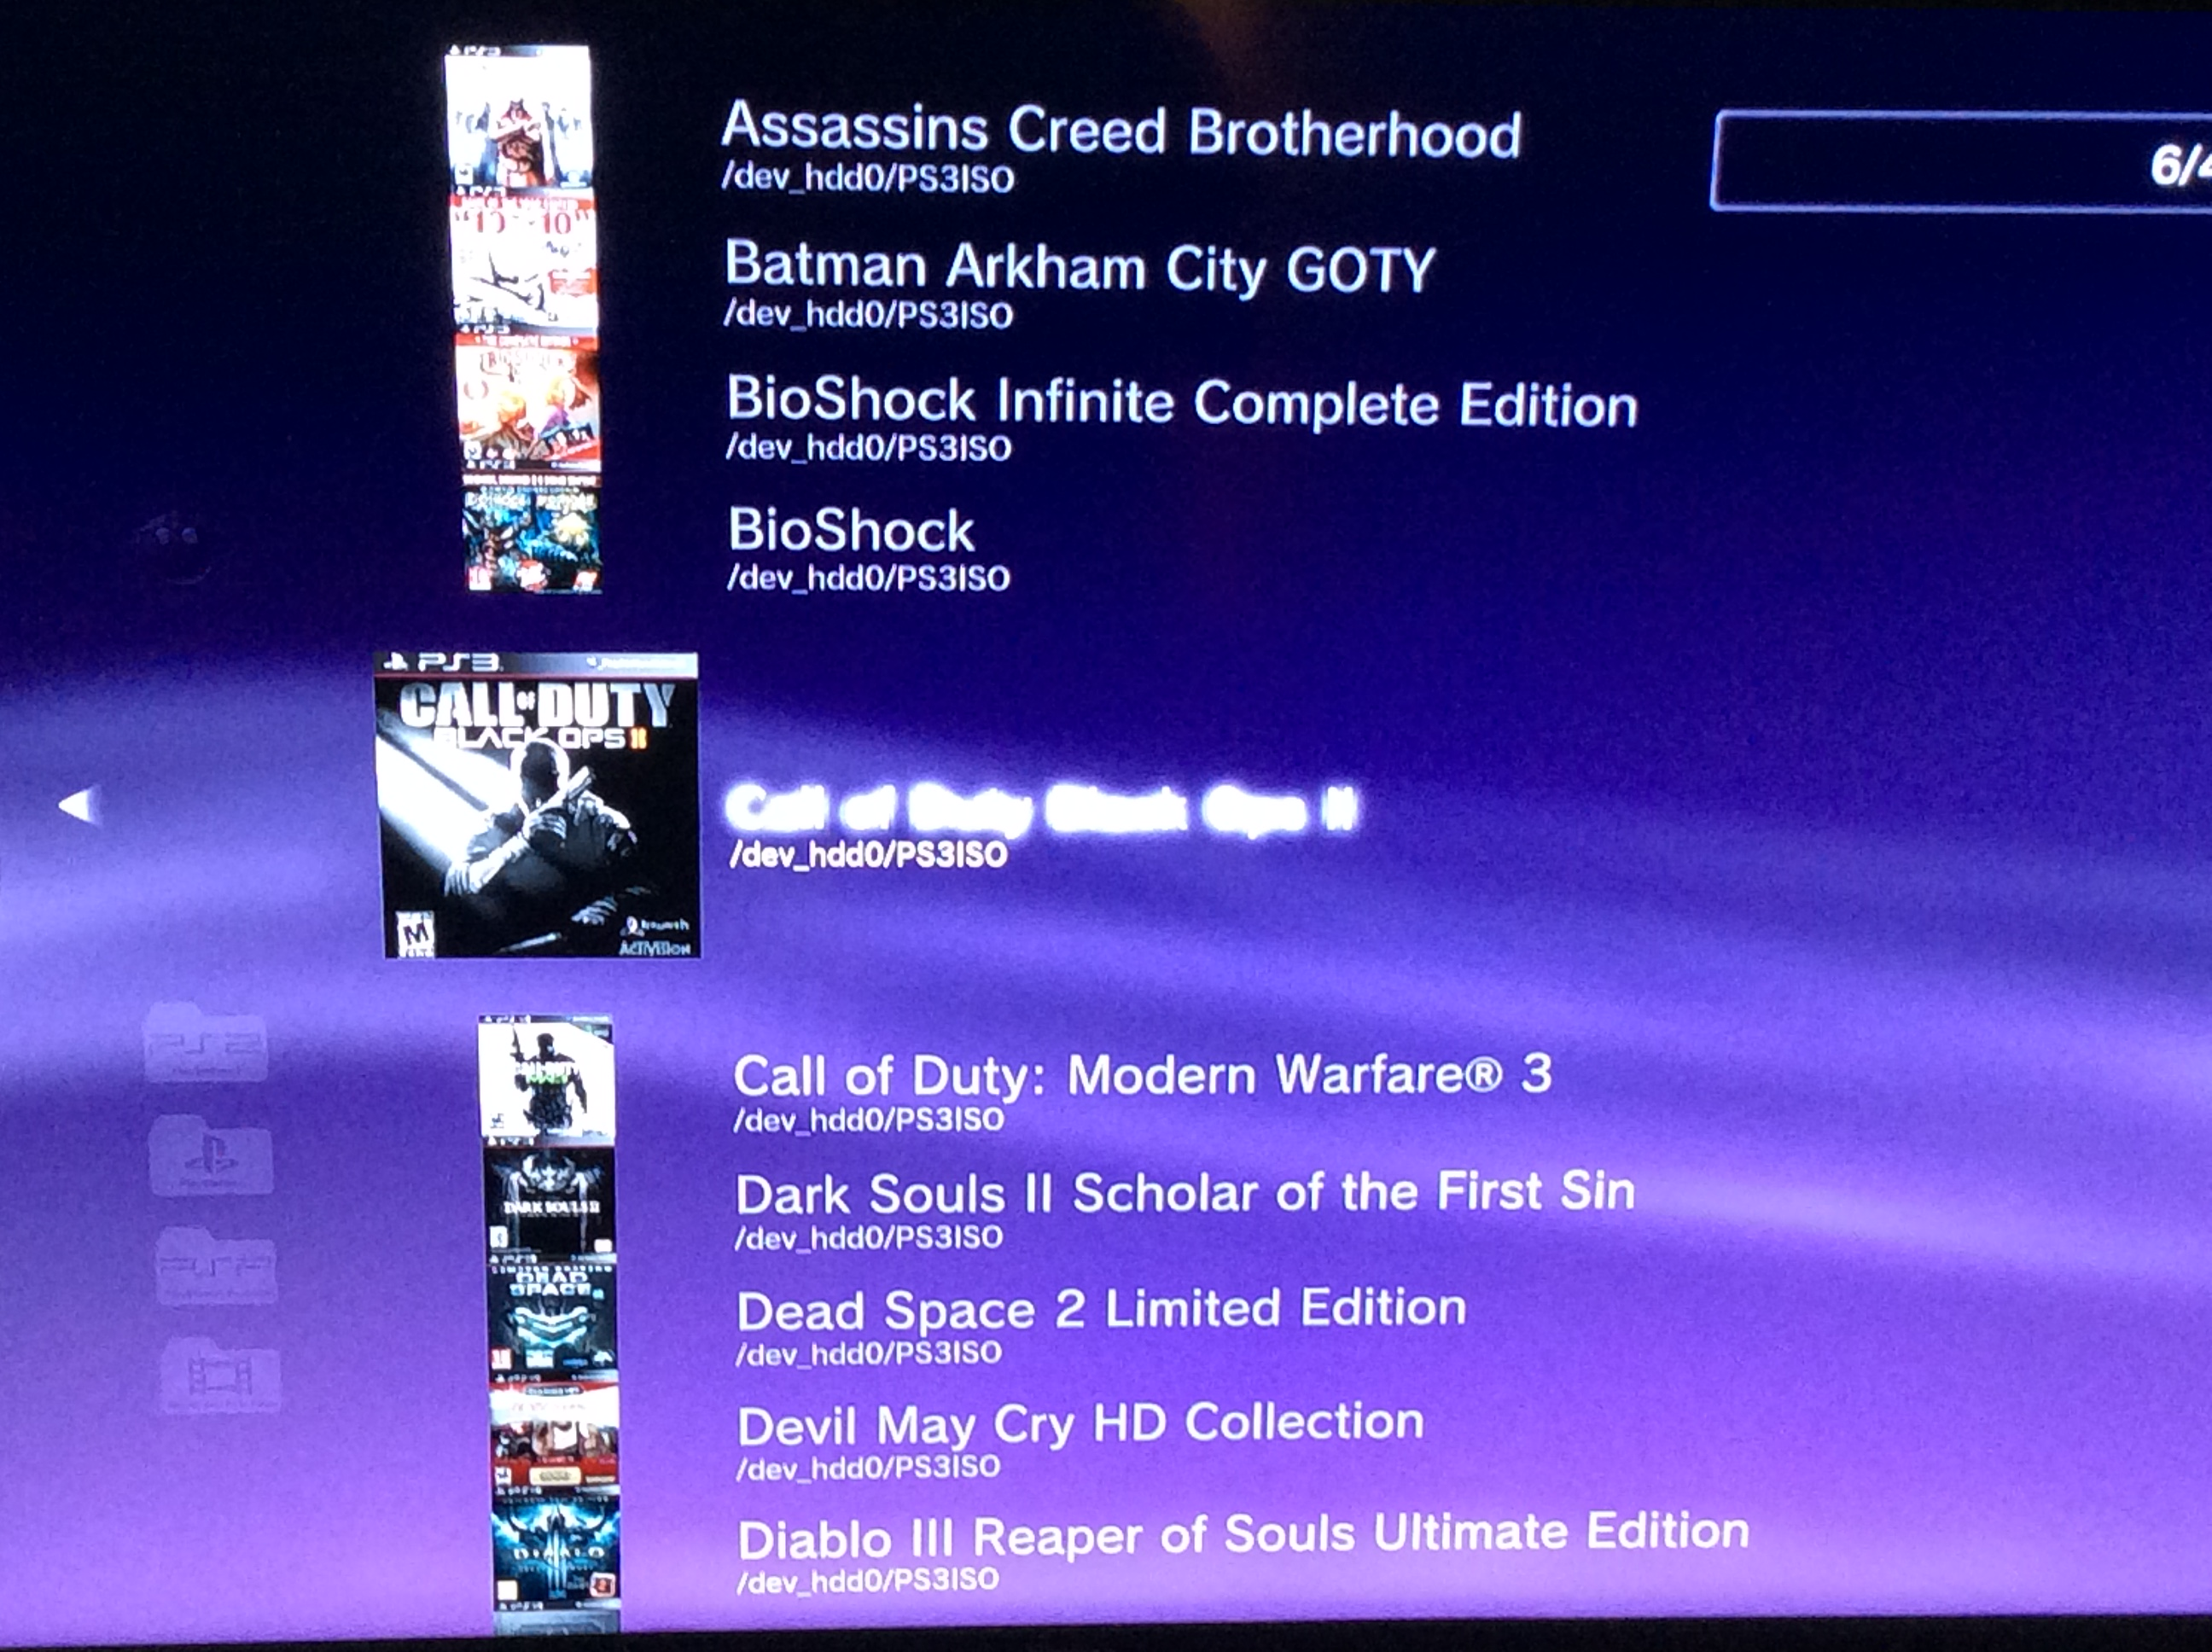 Sony Playstation 3 Jailbroken Psx Ps2 Ps3 Games Psx Classic Killer Cfw Ps3 Edition Aint No Games